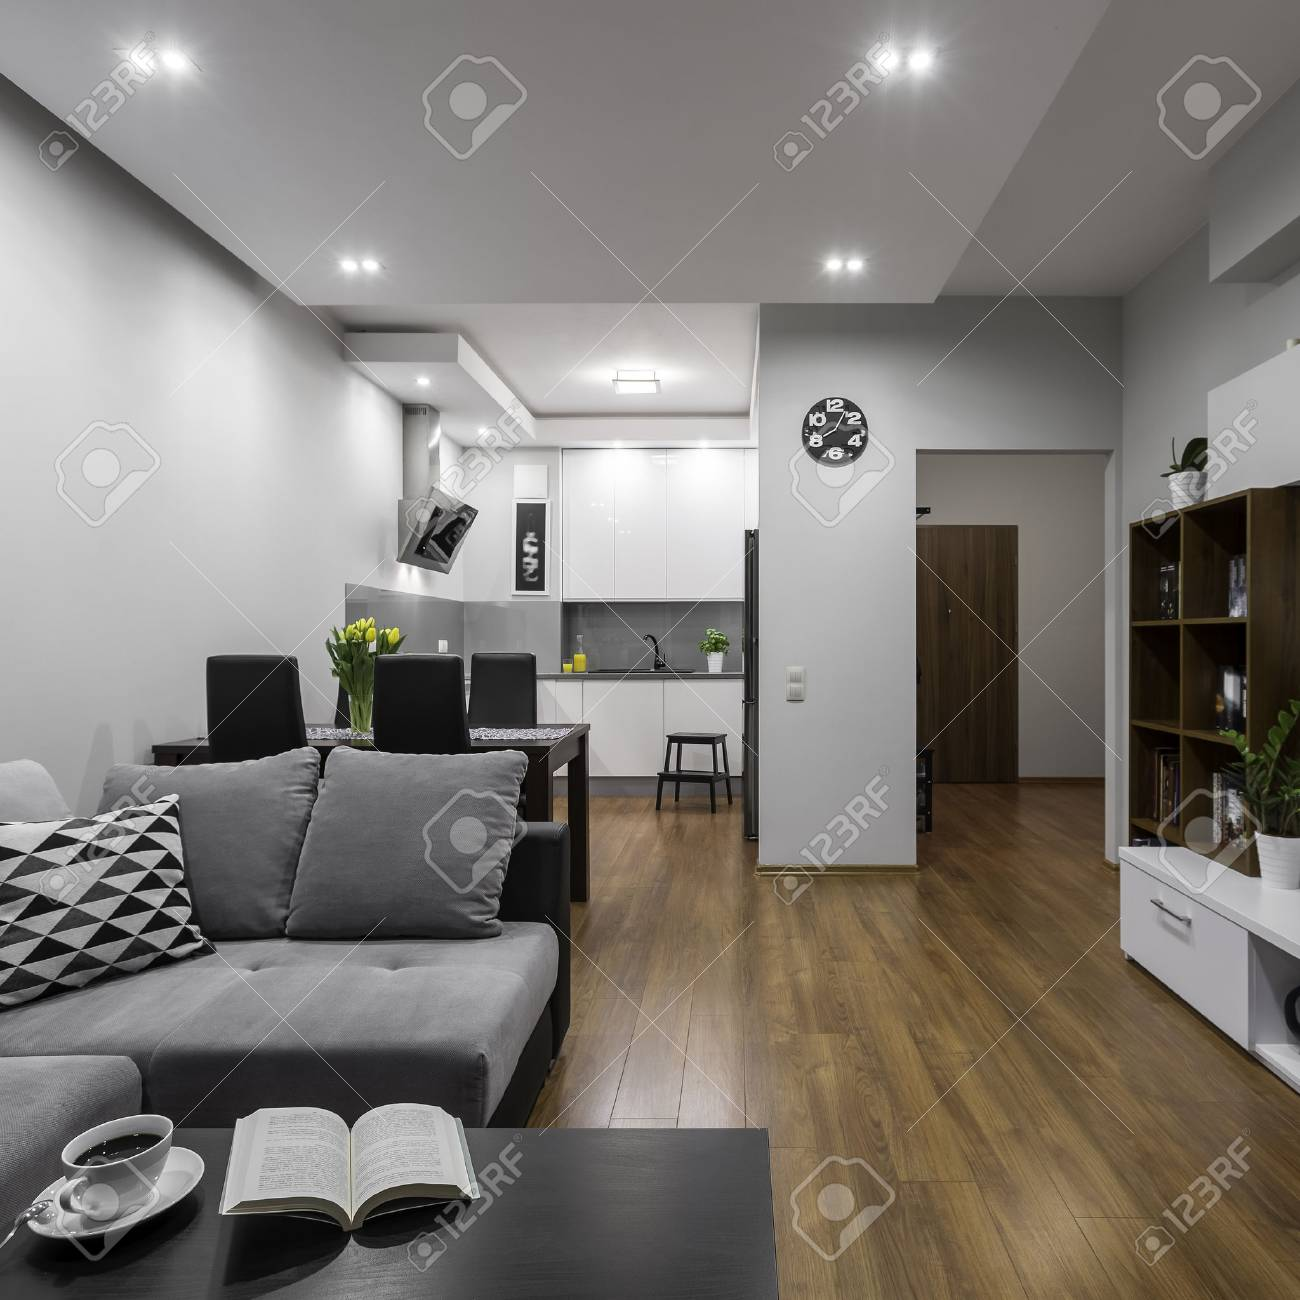 Very Creative Design Of Small Space In Modern Apartment Stock Photo Picture And Royalty Free Image Image 58746997